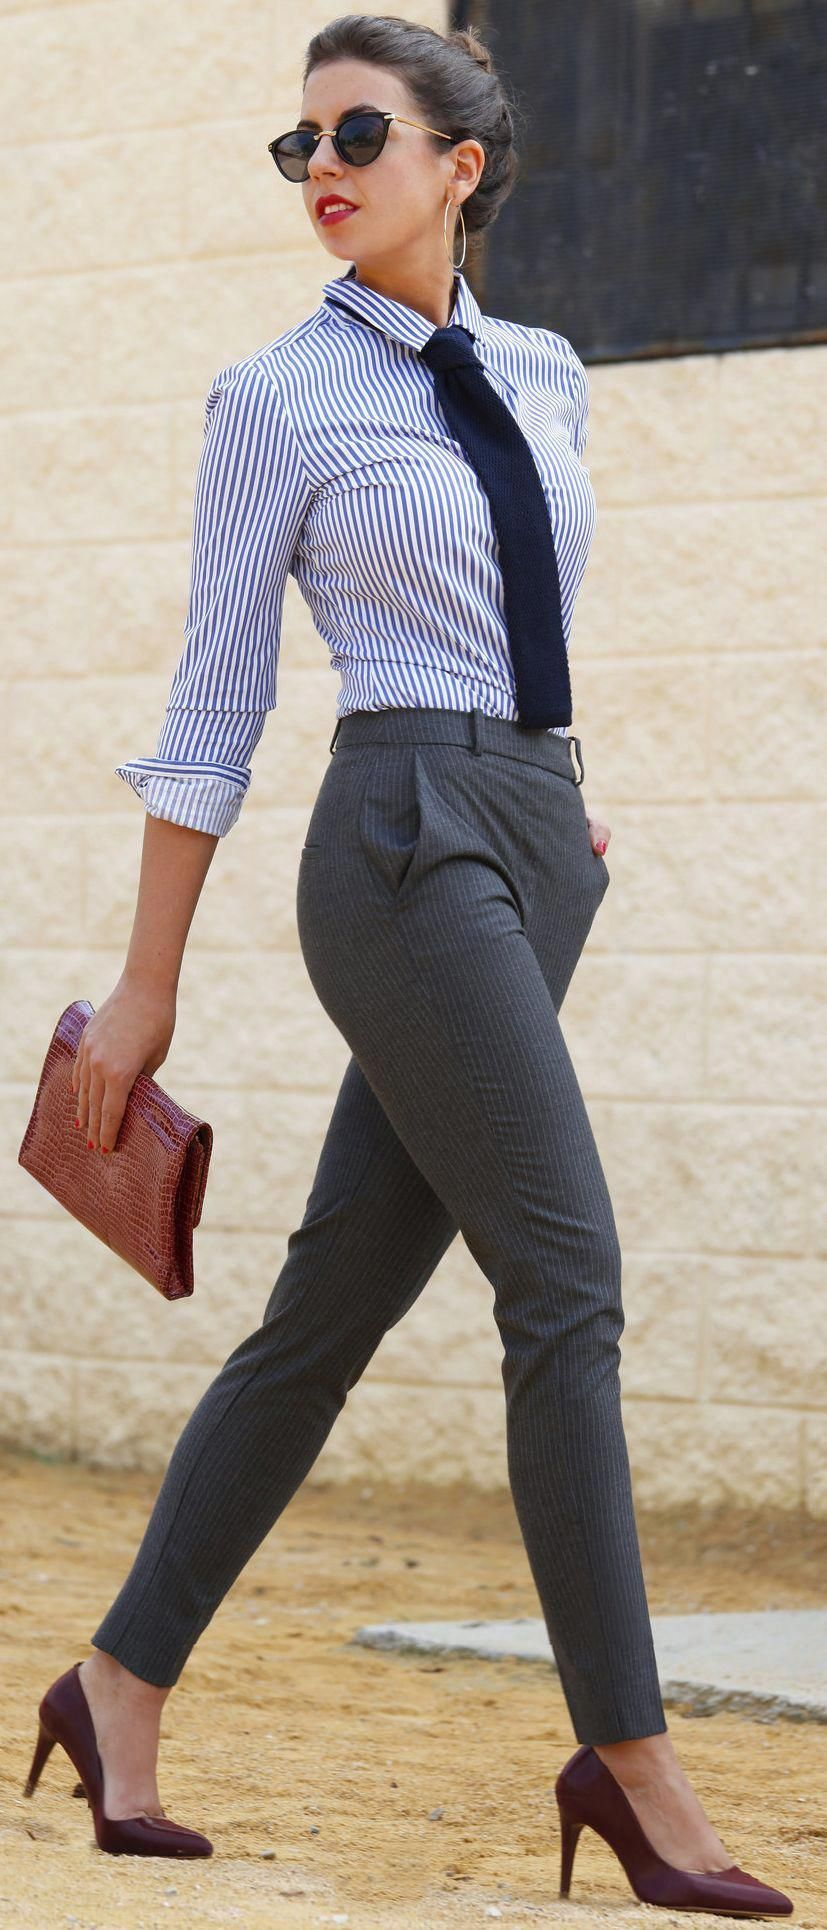 office outfits for young professionals #OFFICEOUTFITS #businessattireforyoungwomen